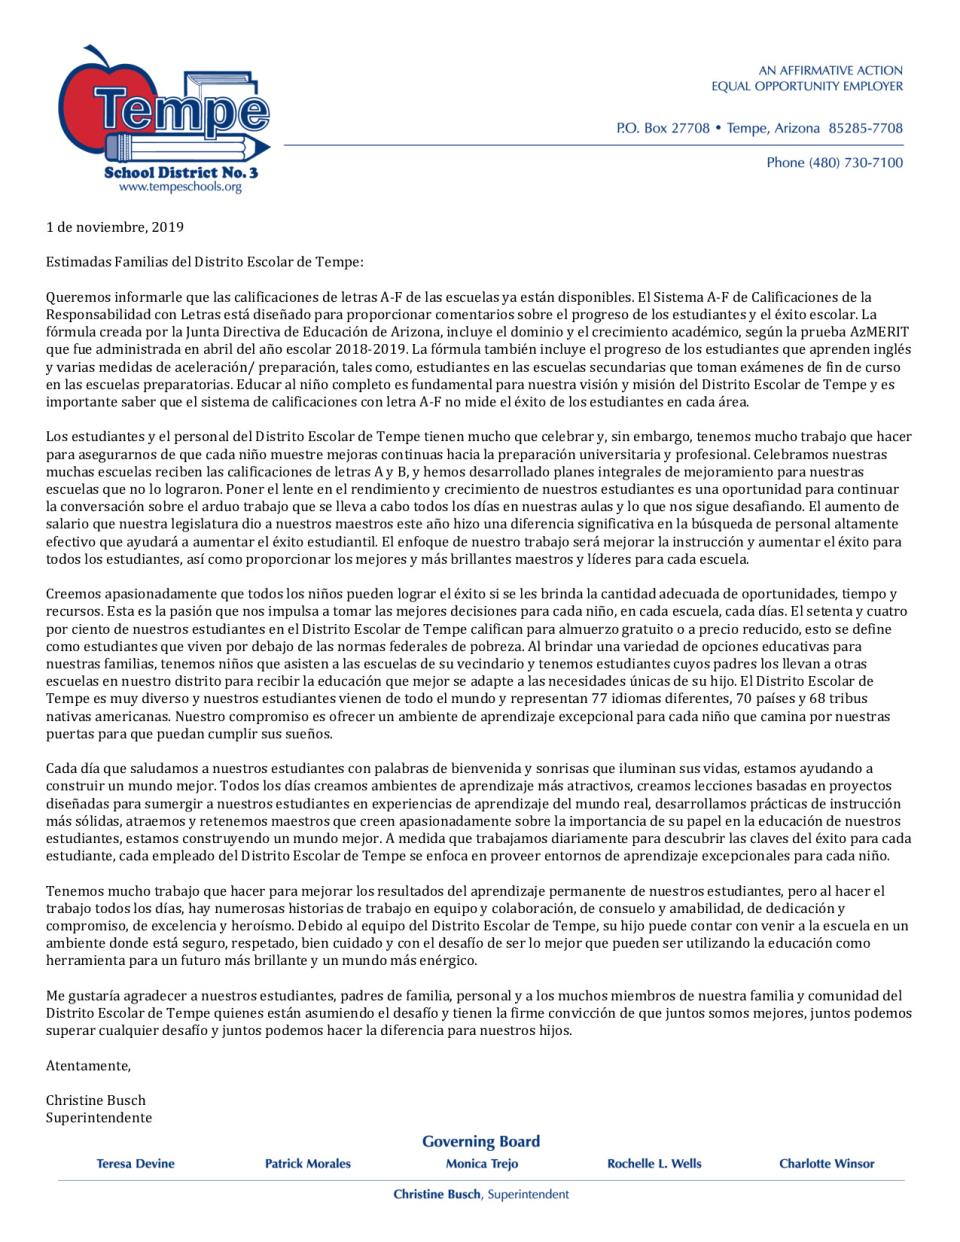 Letter from Superintendent about School Letter Grades -2018-2019 - Spanish